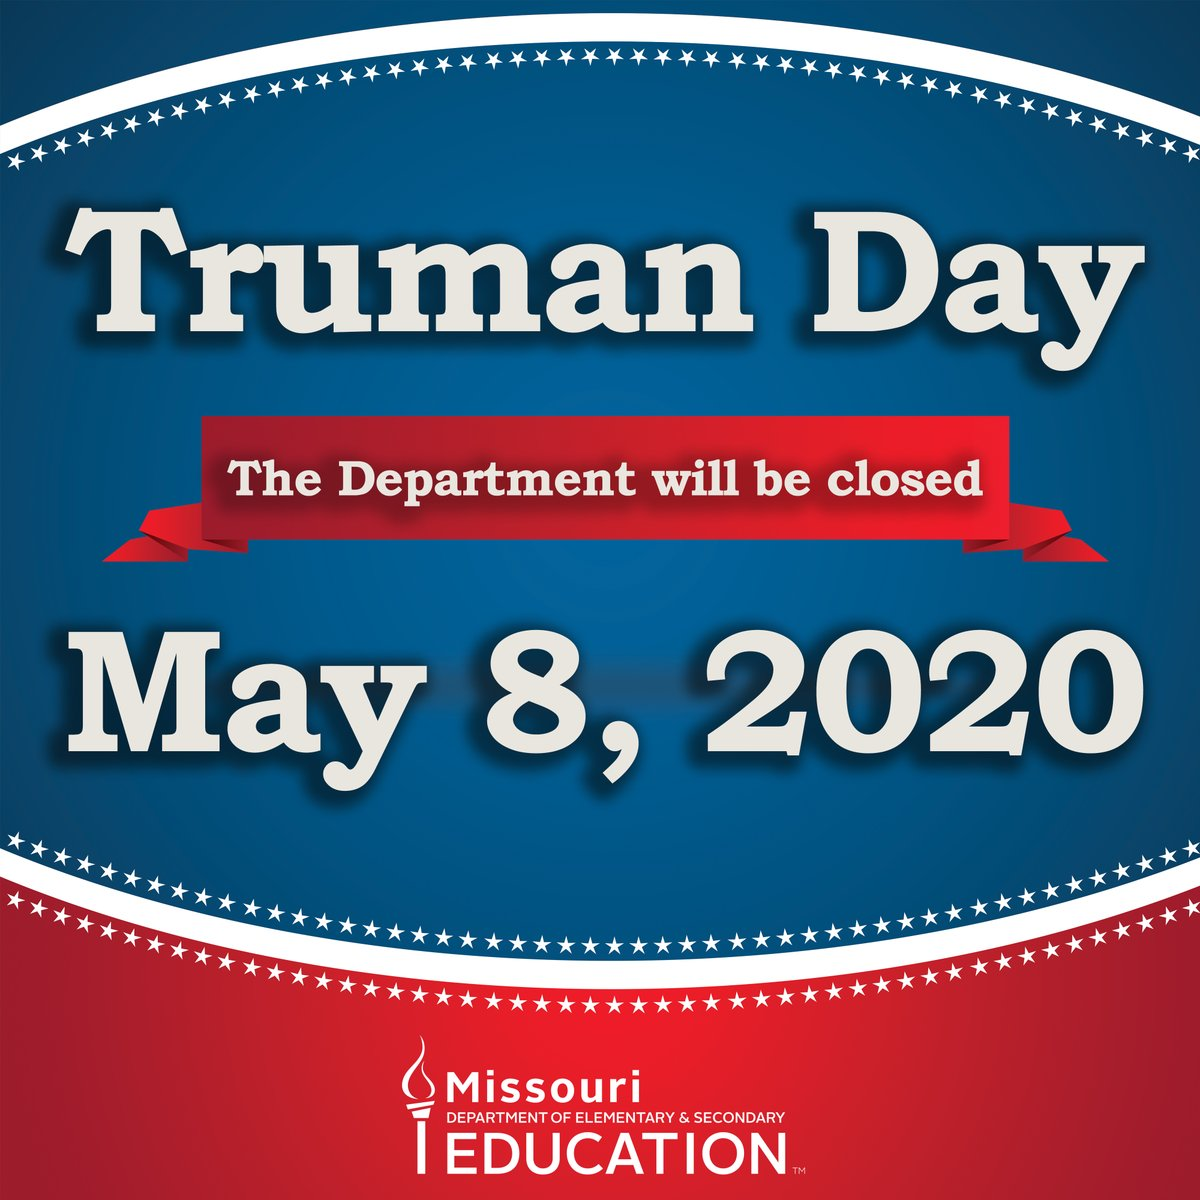 Friday, May 8 is a state holiday and DESE offices will be closed.